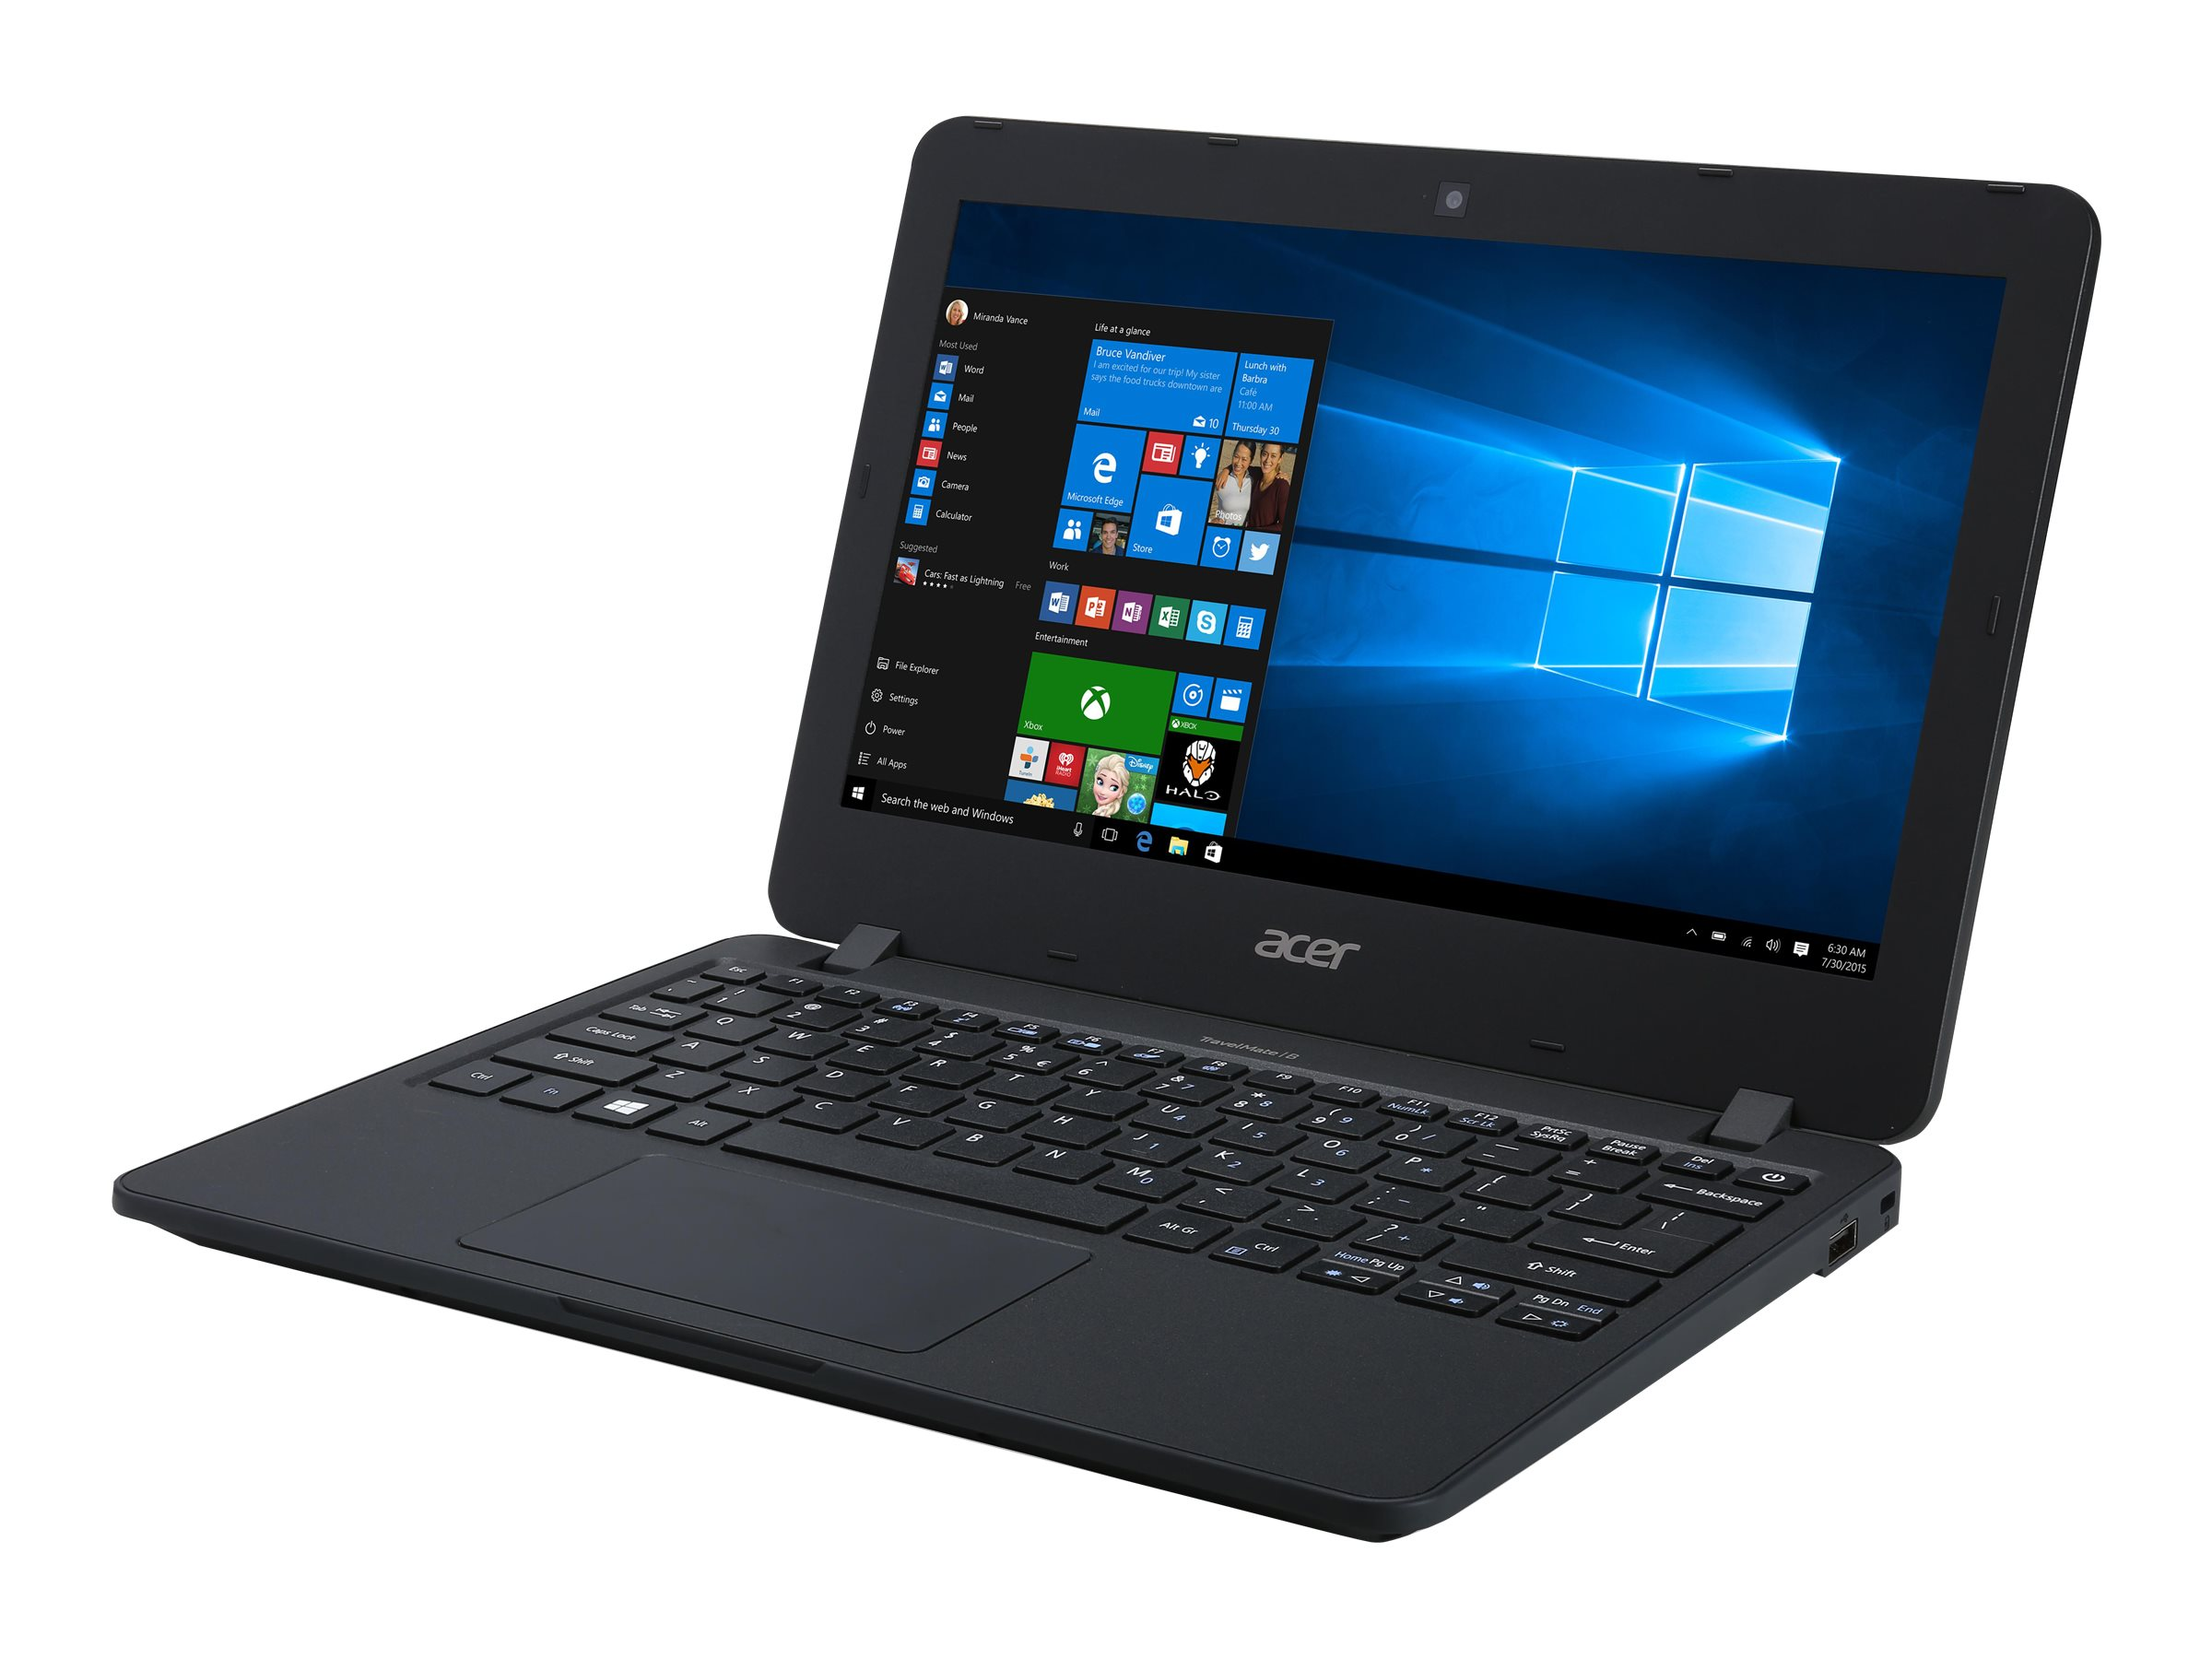 Acer TravelMate B117-M-C37N 1.6GHz Celeron 11.6in display, NX.VCGAA.006, 31654736, Notebooks